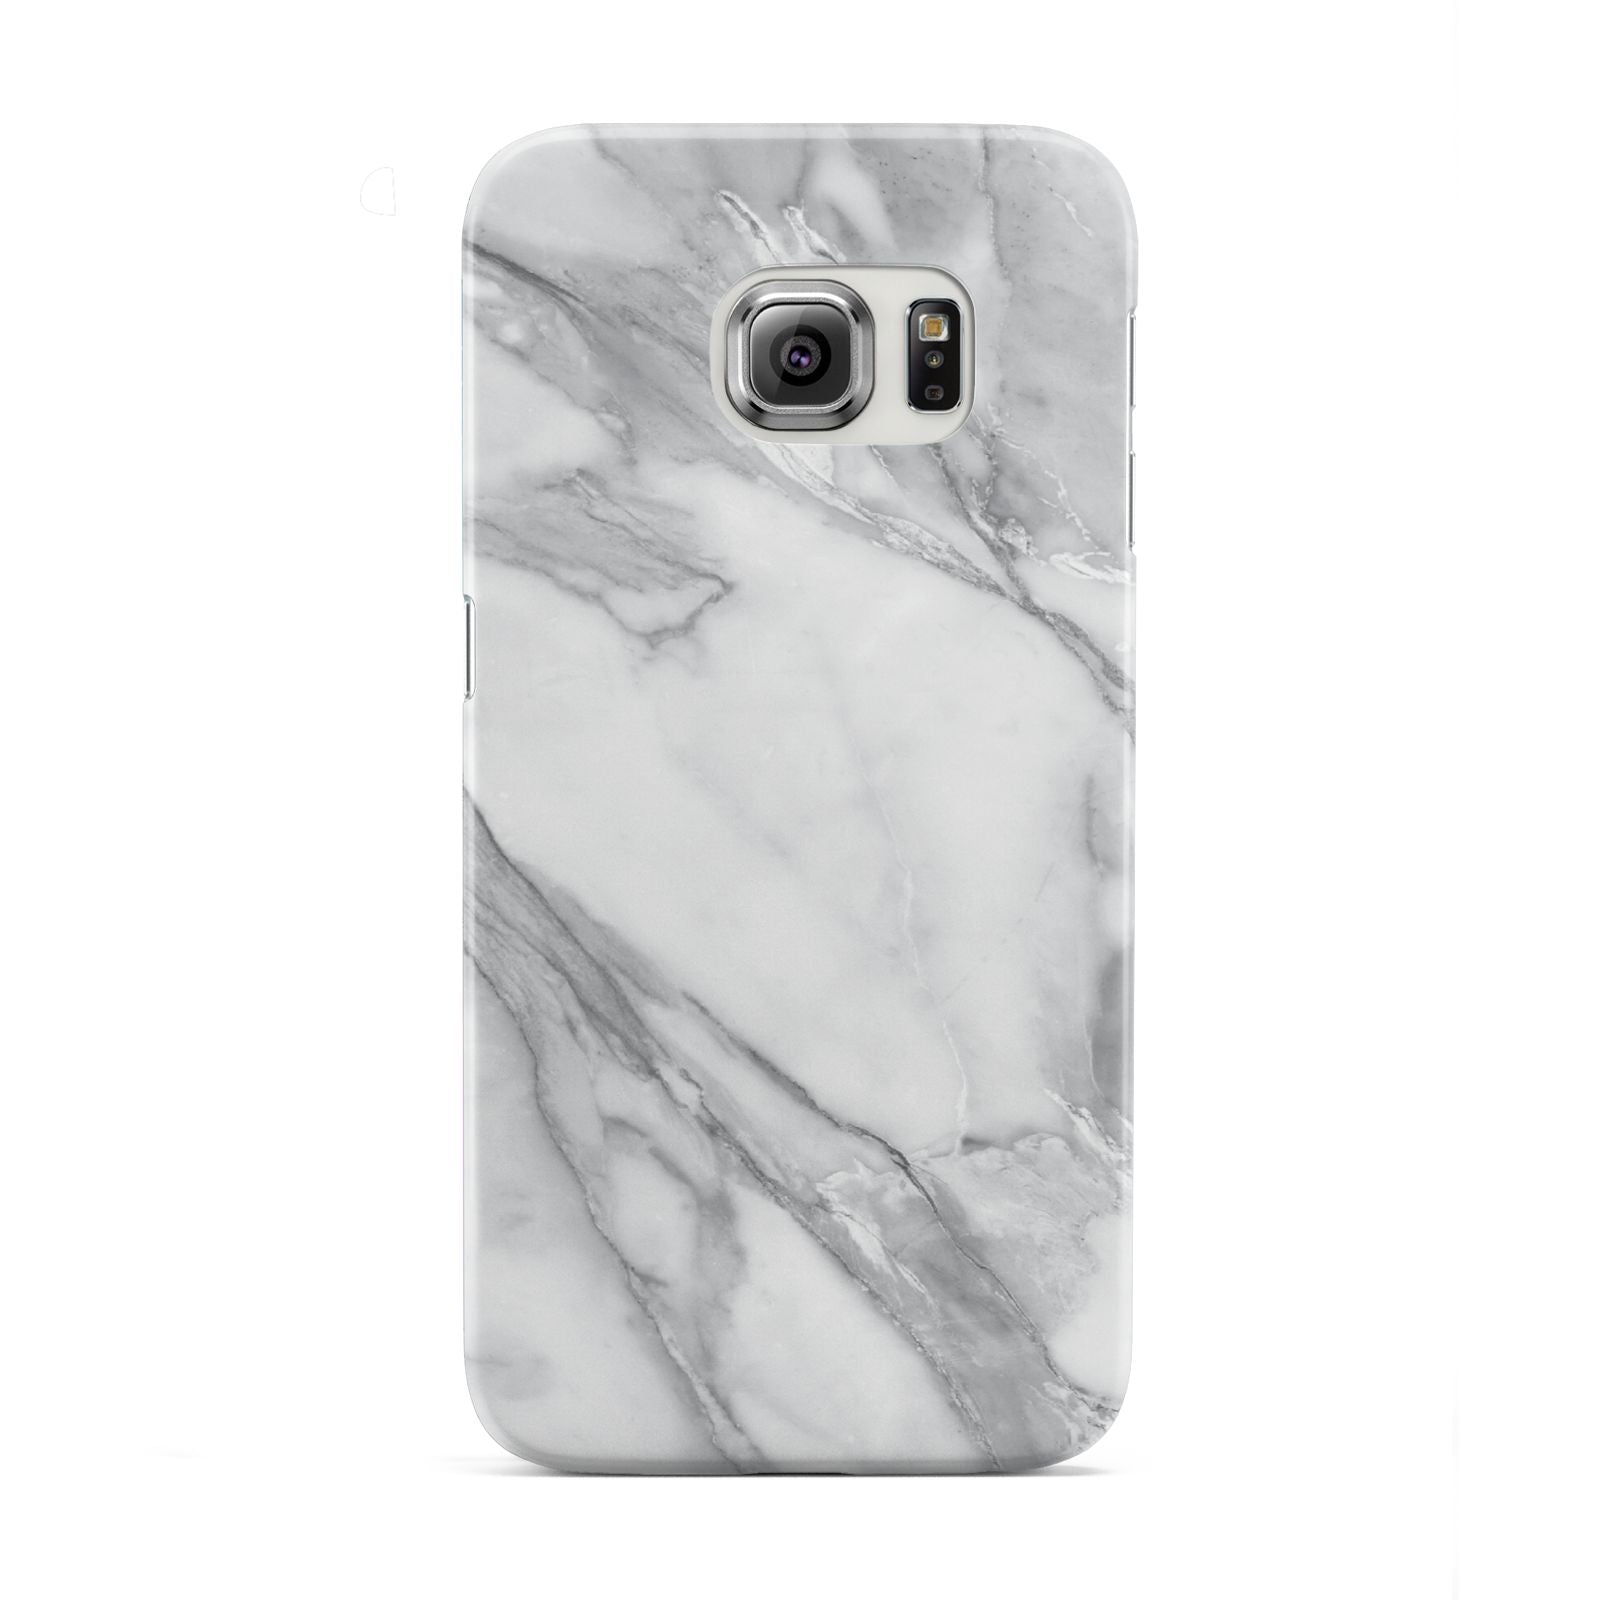 Faux Marble Effect White Grey Samsung Galaxy S6 Edge Case